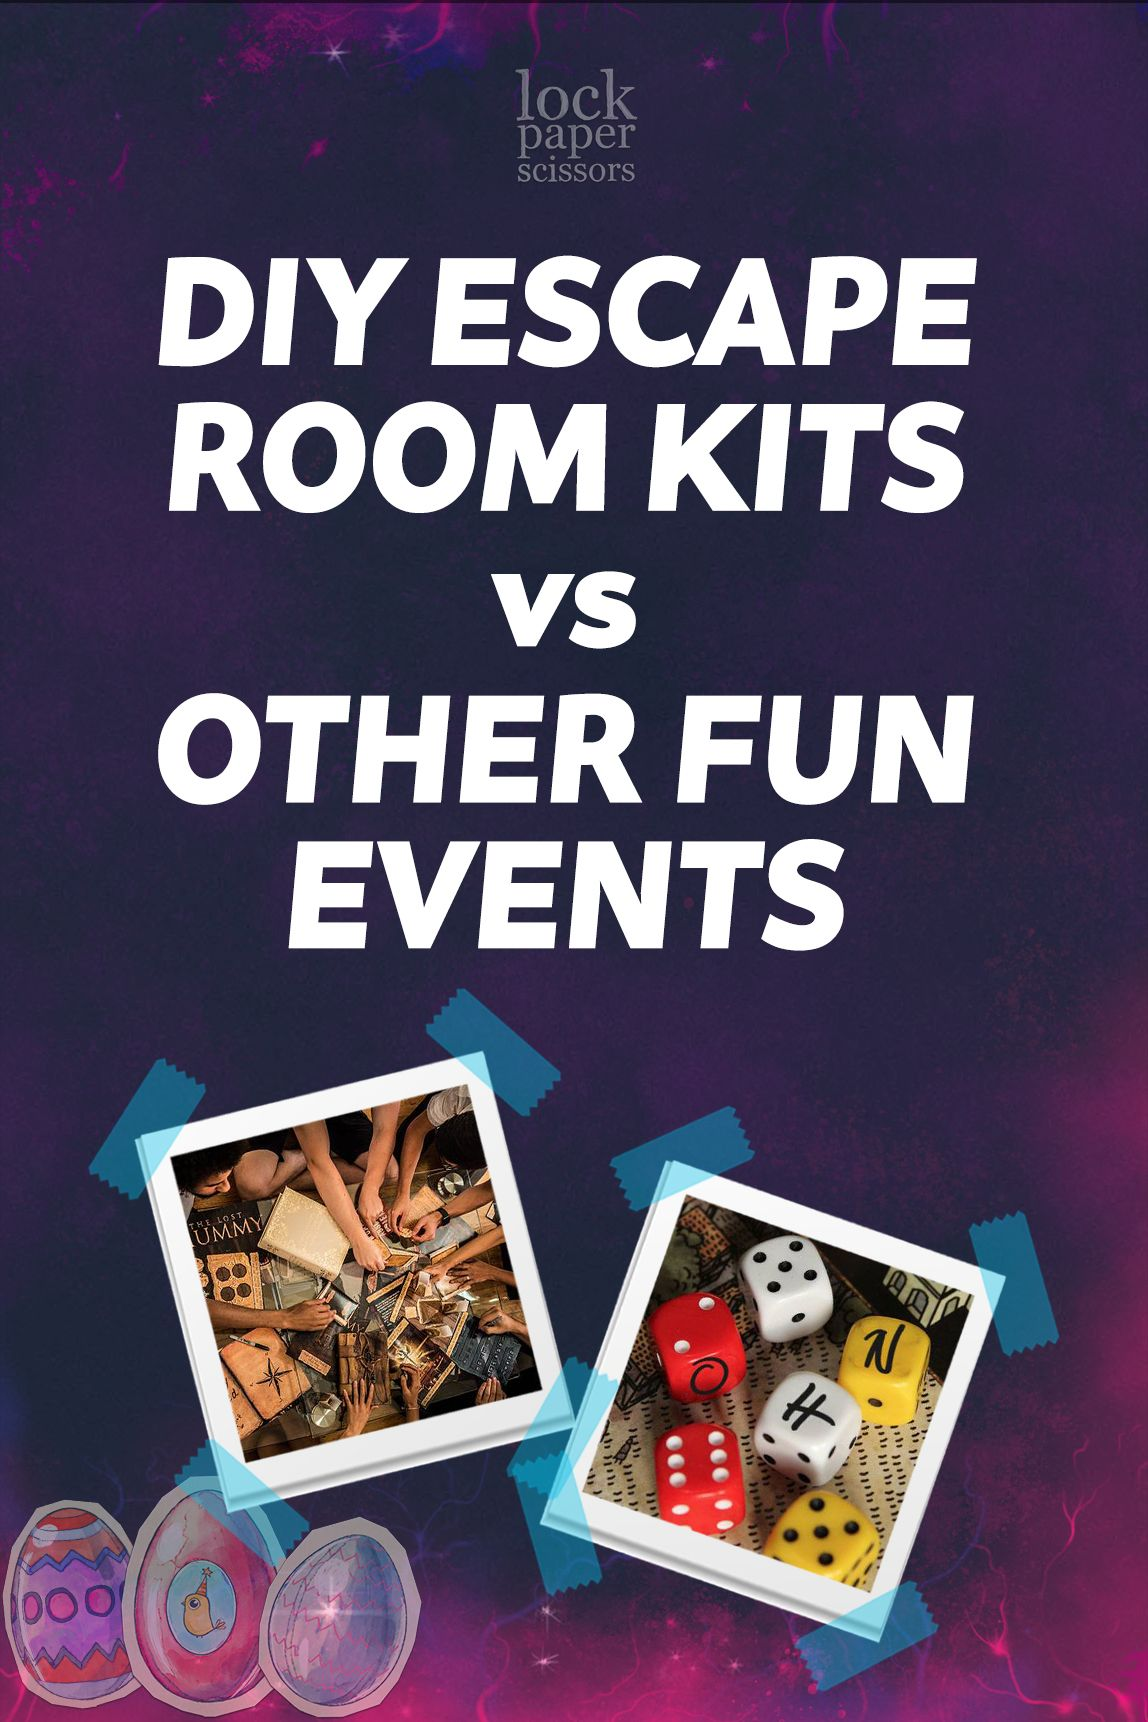 Diy escape room kits vs other fun events which is which